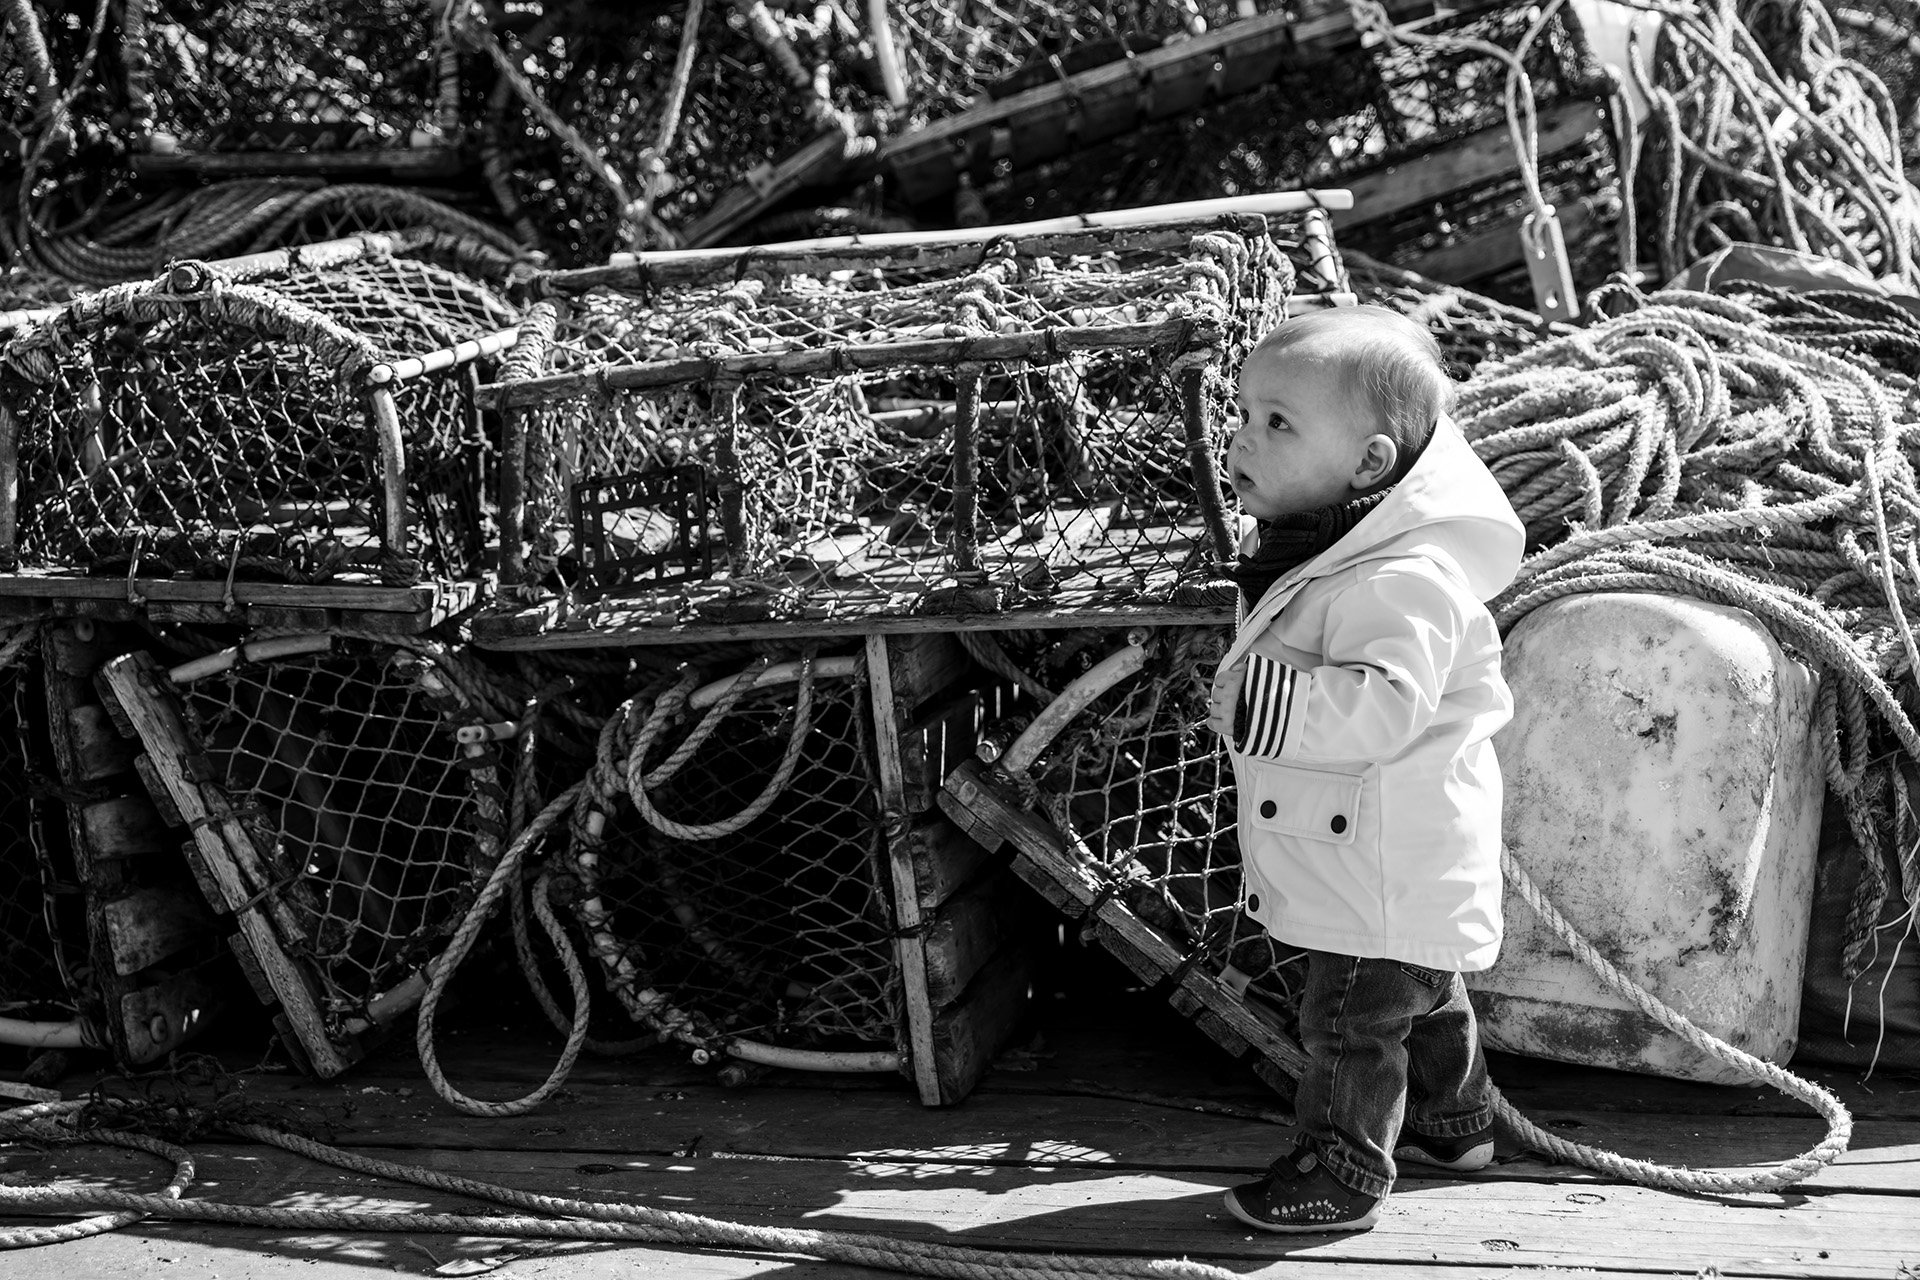 Sebbie The Fisherman BW 3 WR